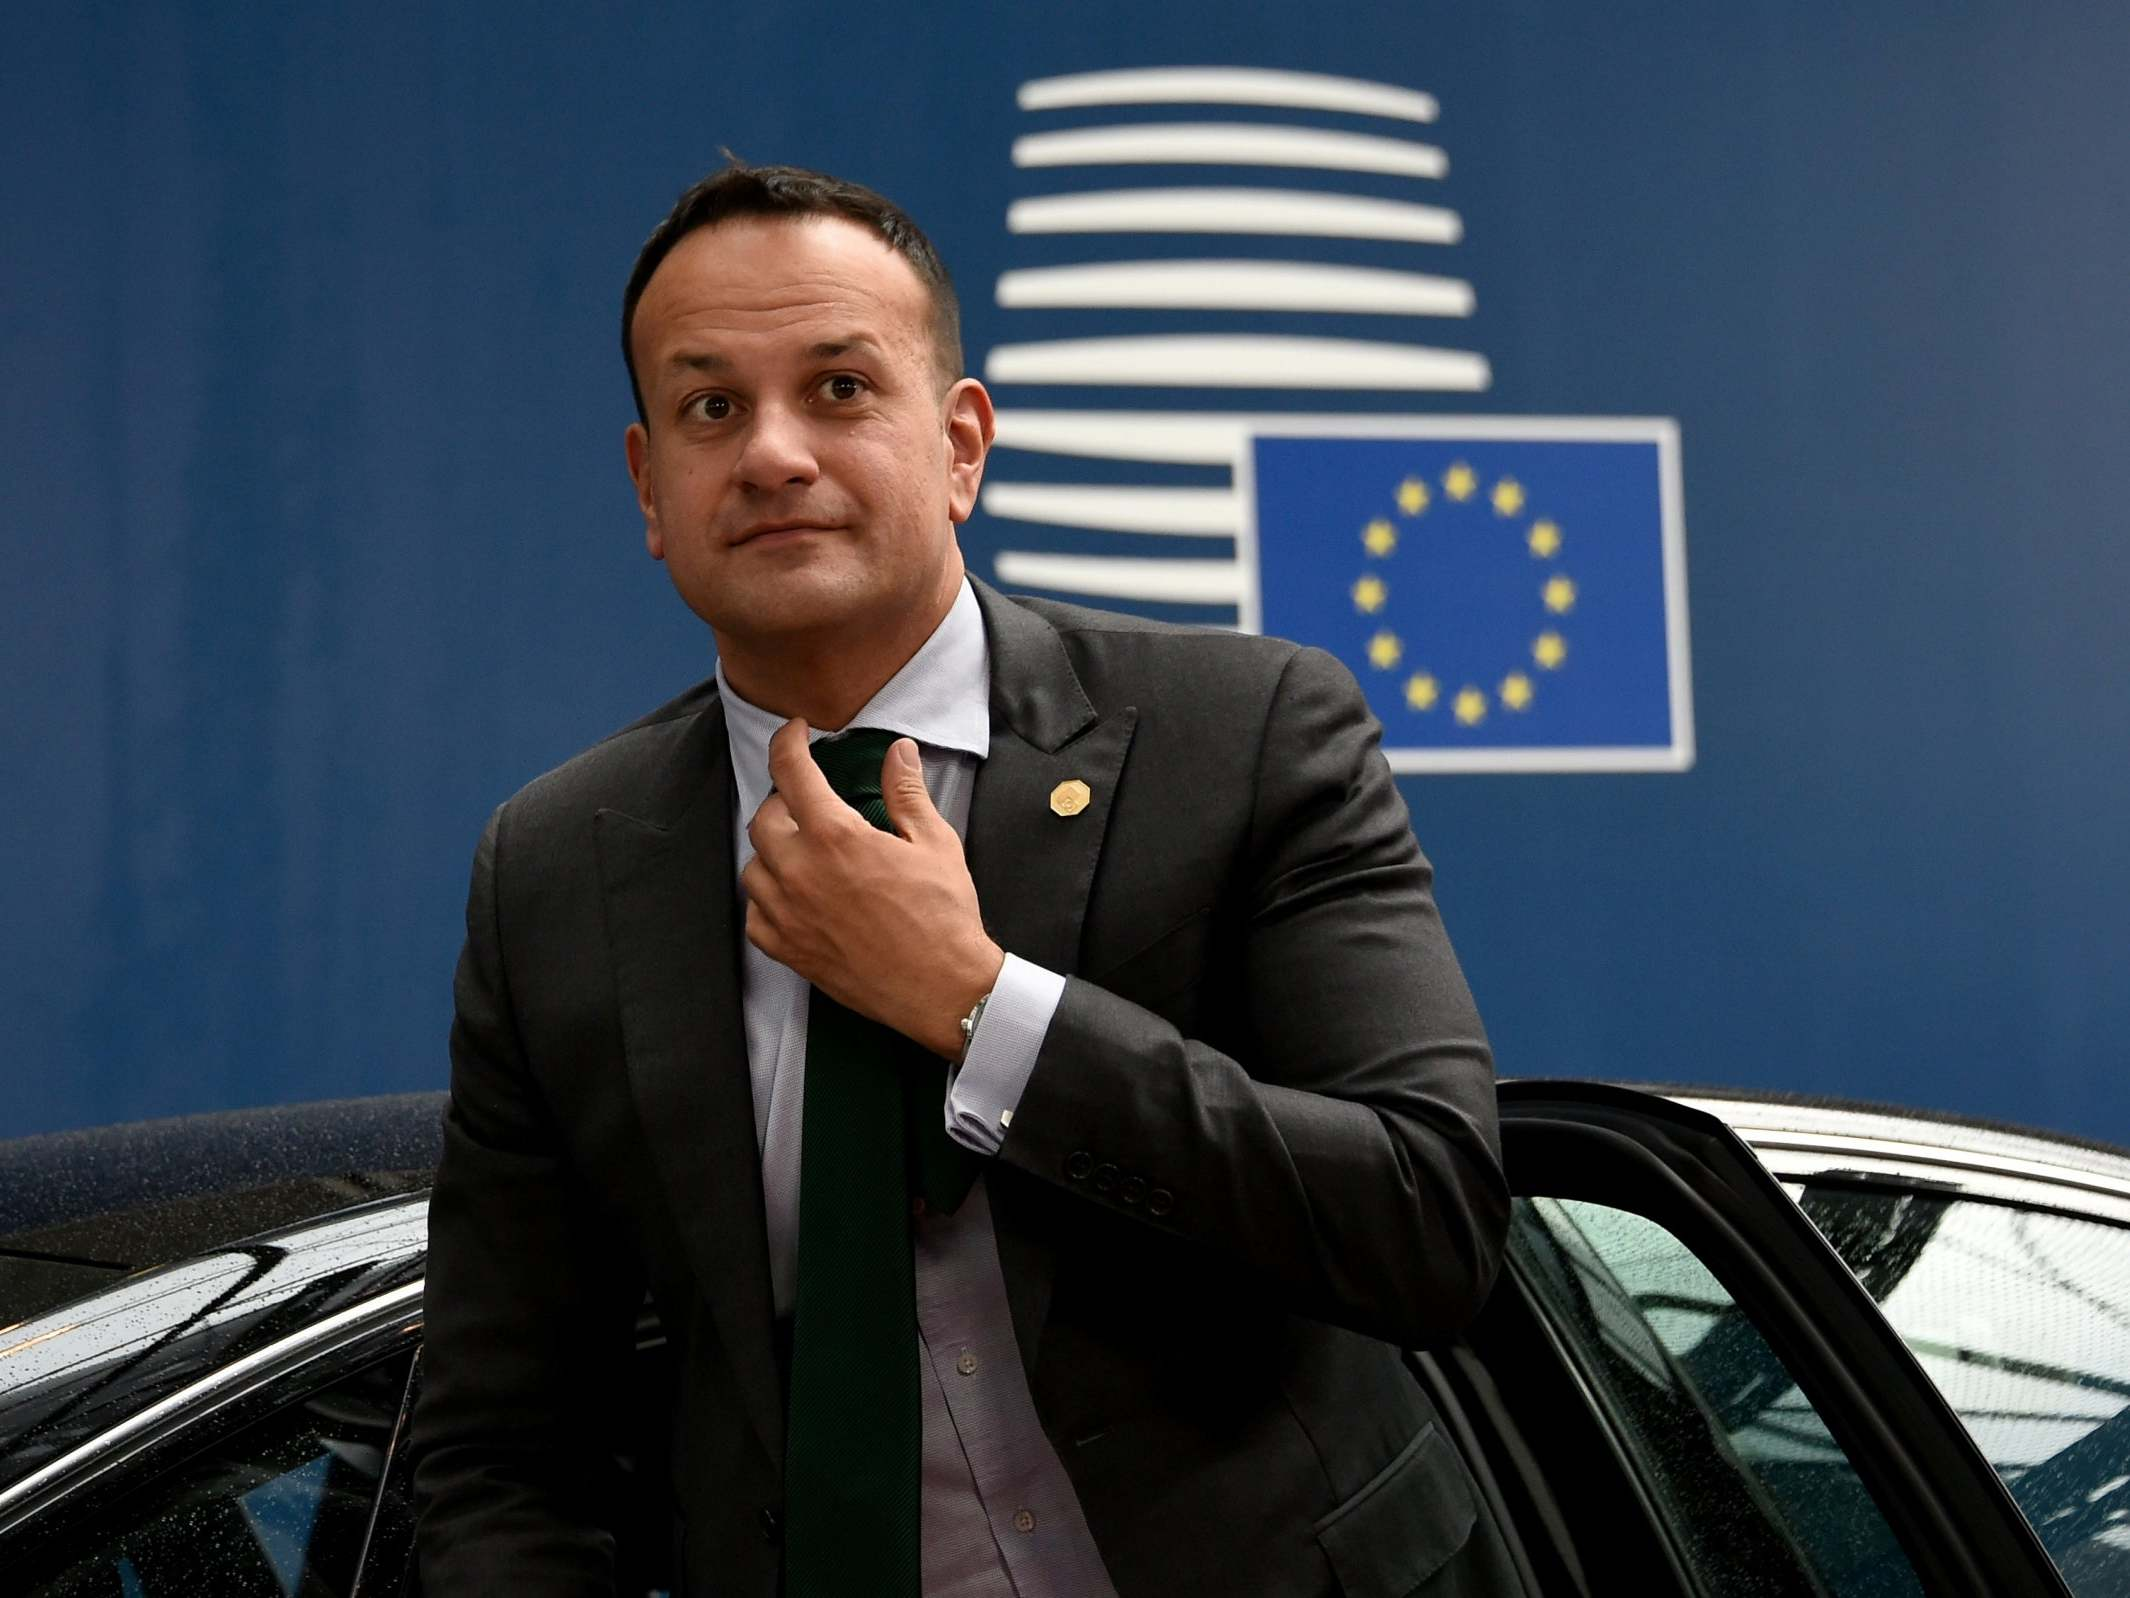 Labour manifesto: EU 'open to' Corbyn's Brexit policy, says Ireland's Leo Varadkar